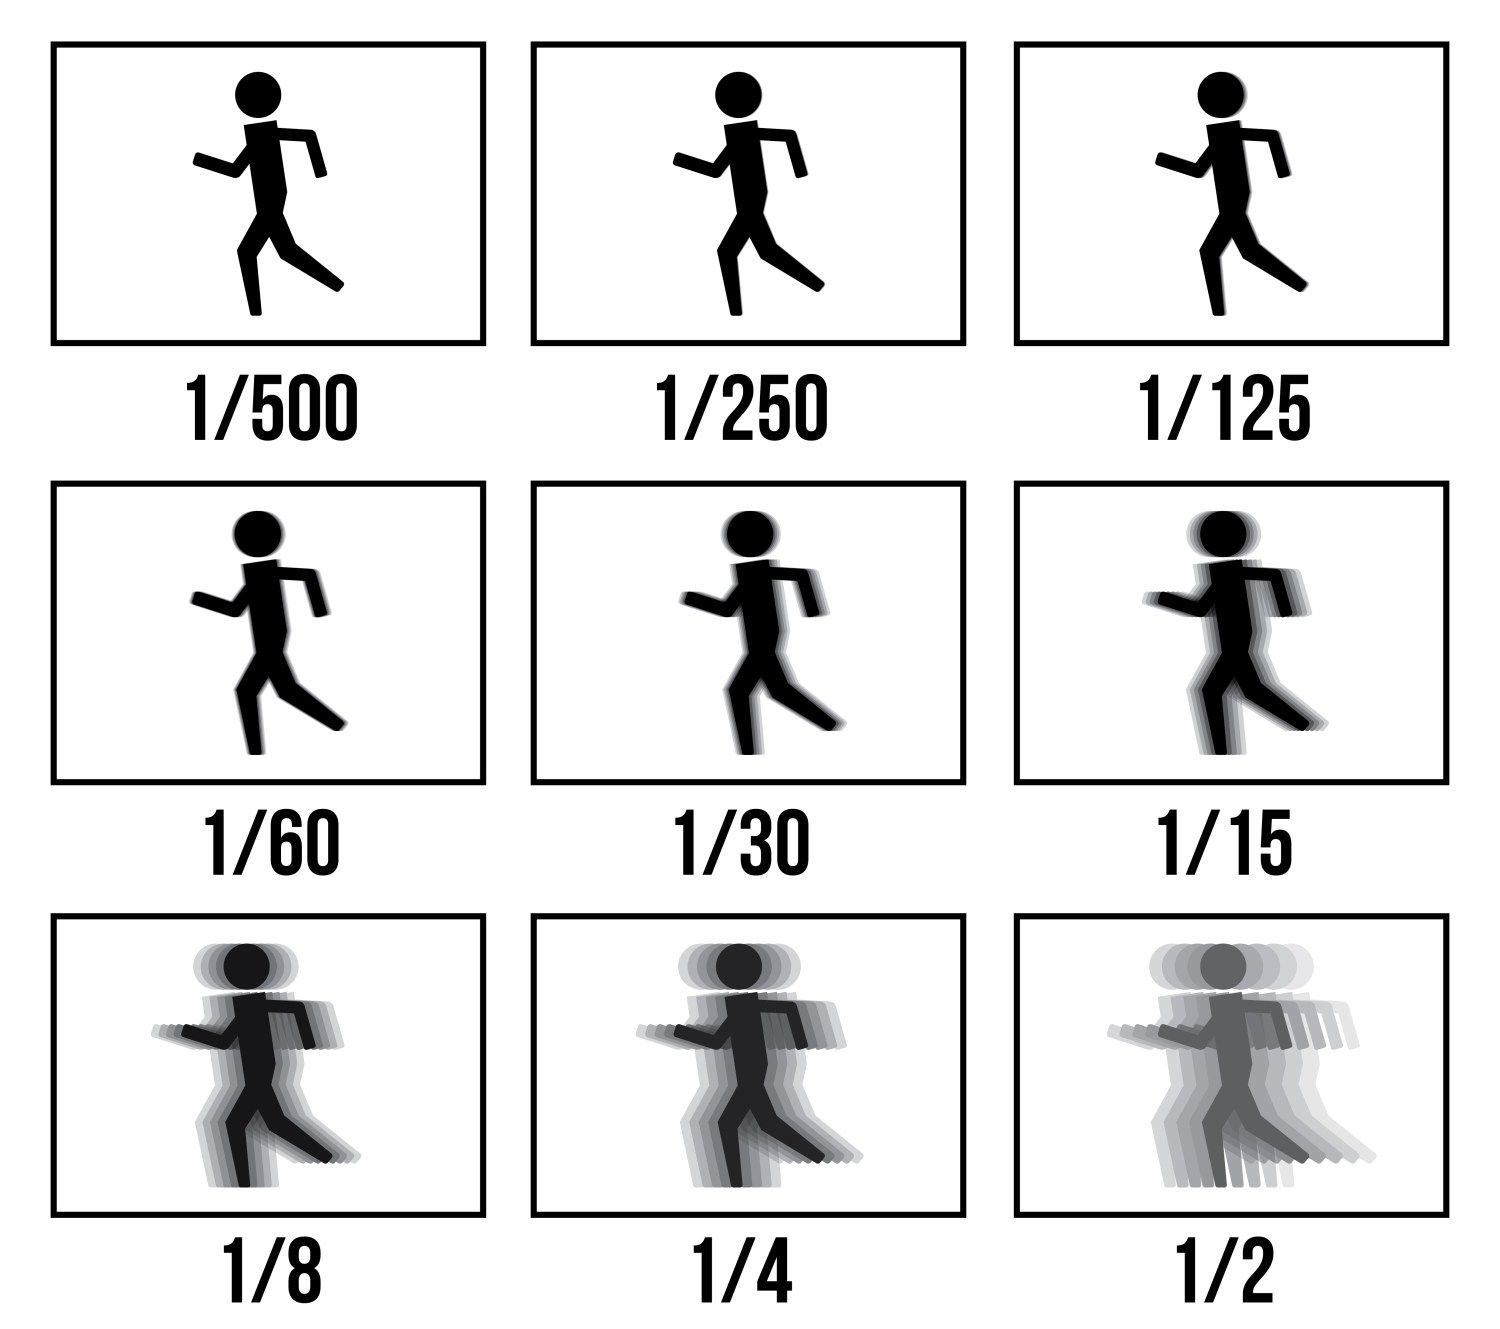 The lower the shutter speed the more motion blur you introduce but.. this also allows more time for the light to hit the image sensor. To avoid over exposure you might need to adjust your Aperture and ISO.